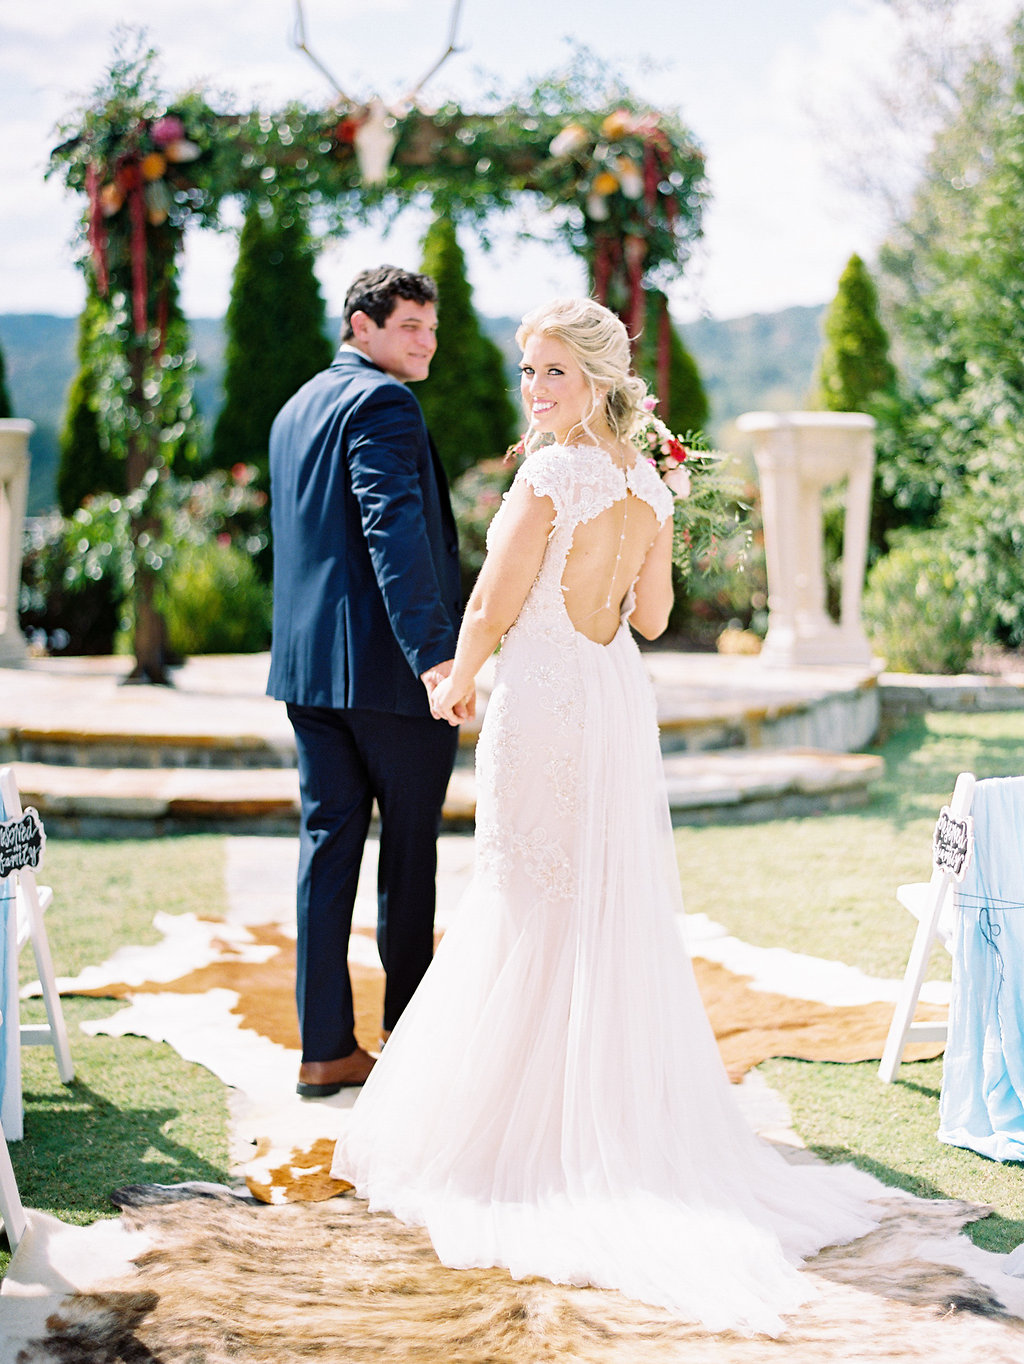 bride and groom - photo by Cathrine Taylor Photography http://ruffledblog.com/colorful-alabama-wedding-with-desert-accents